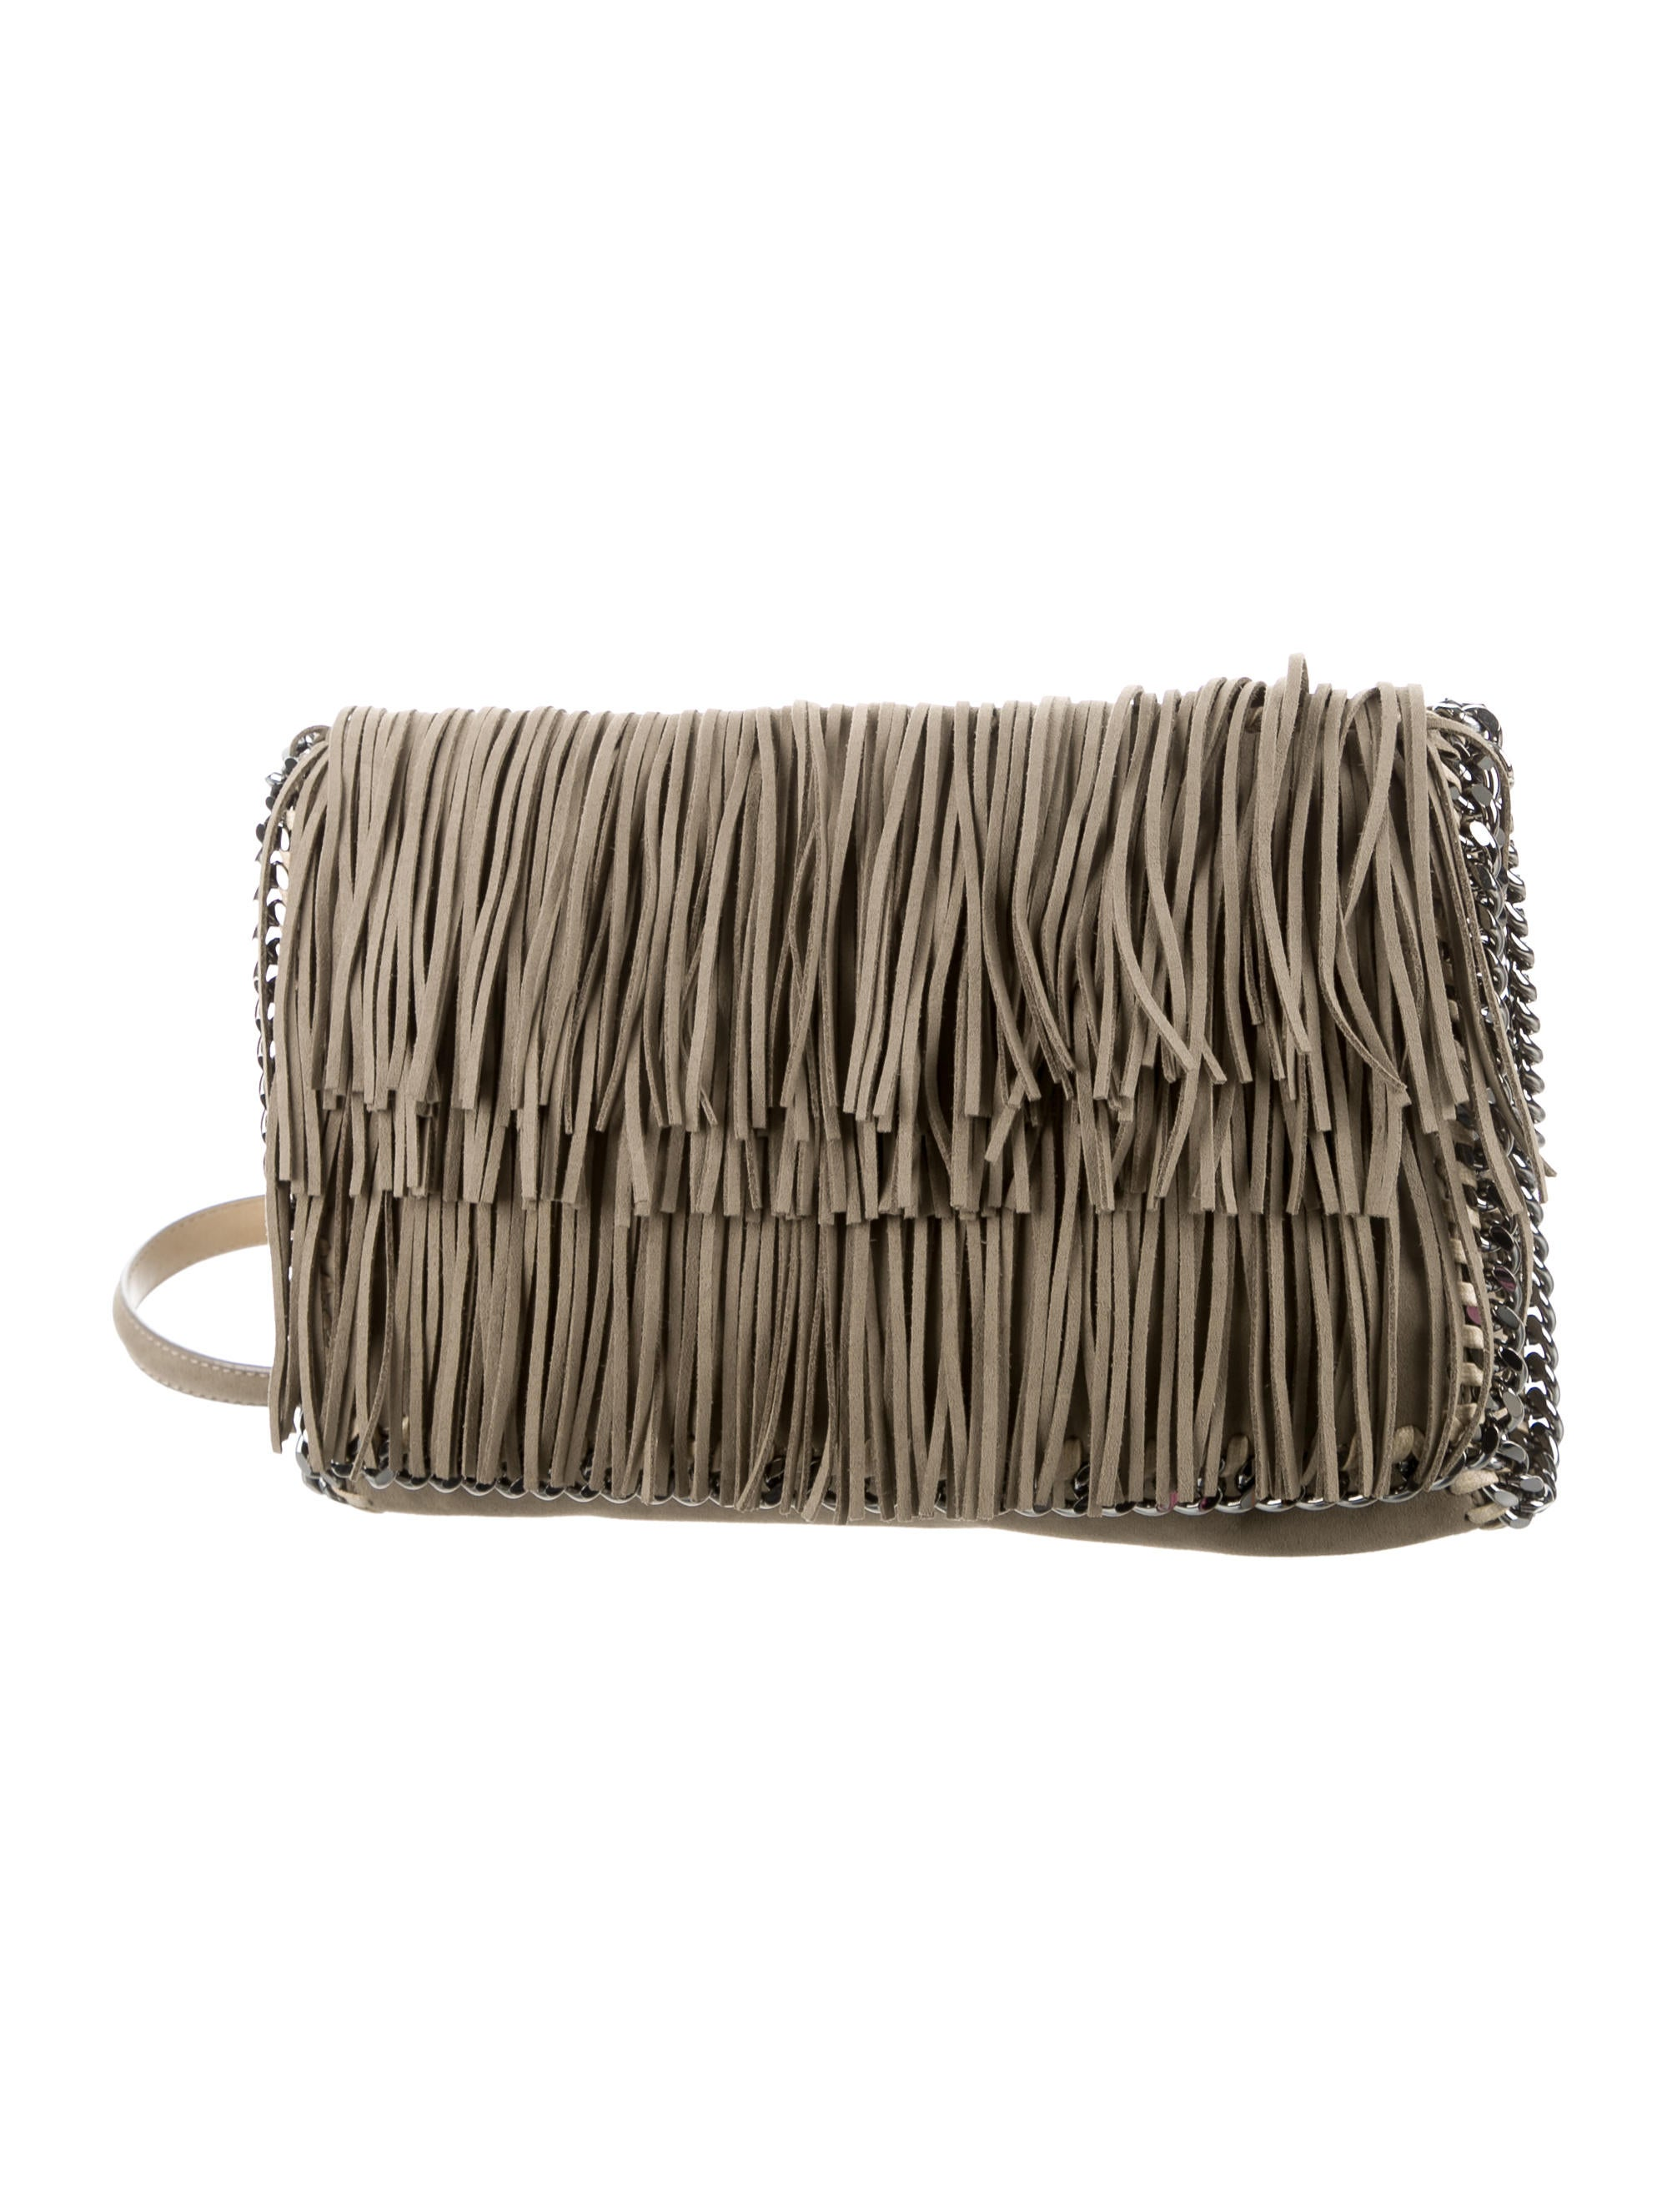 Montana West USA Wholesale collection combines traditional western elements with modern design. Cowgirl Leather Purses, Western Handbags, Apparel, Boots, Concealed Carry Handbags, Home Decor. RLC-L Montana West Real Leather Fringe Crossbody. $ RLC-L Montana West Real Leather Fringe Crossbody.